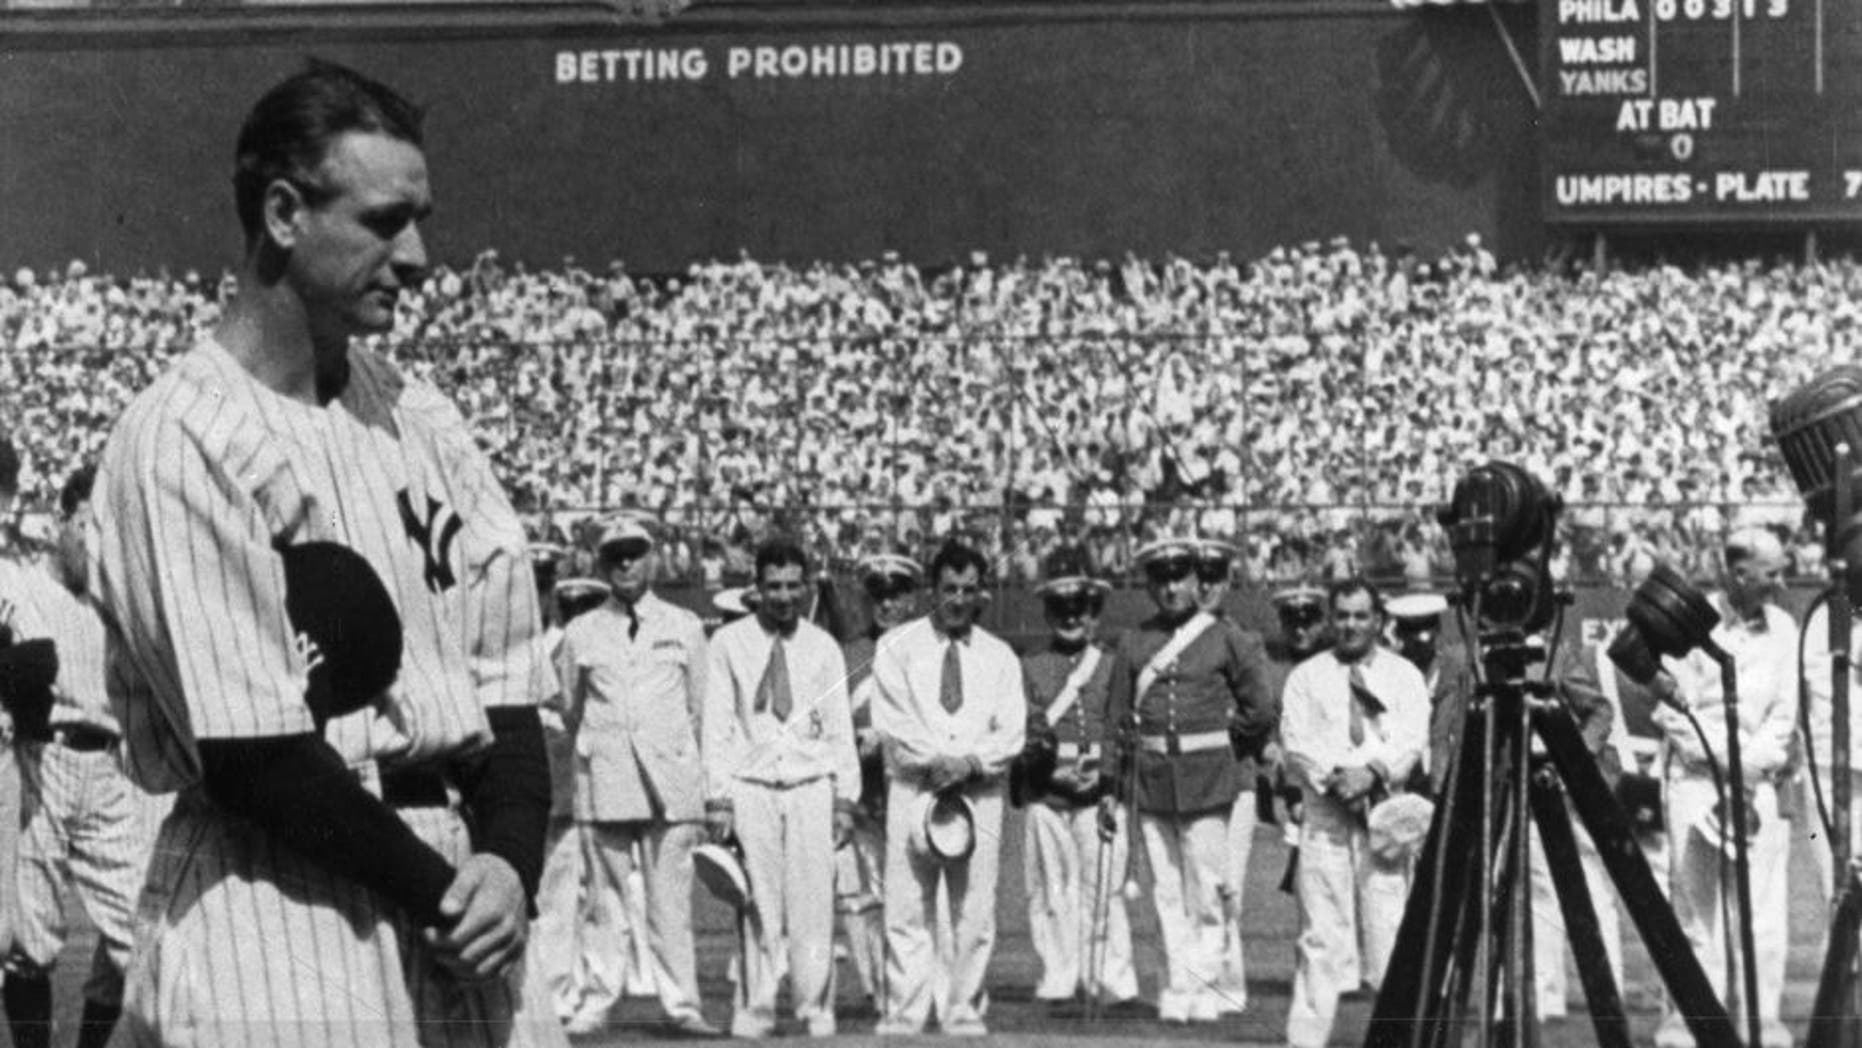 NEW YORK - JULY 4, 1939. Lou Gehrig, first baseman for the New York Yankees, is shown at the microphone during Lou Gehrig Appreciation Day, a farewell to the slugger, at Yankee Stadium on July 4, 1939. (Photo by Mark Rucker/Transcendental Graphics, Getty Images) *** Local Caption *** Lou Gehrig